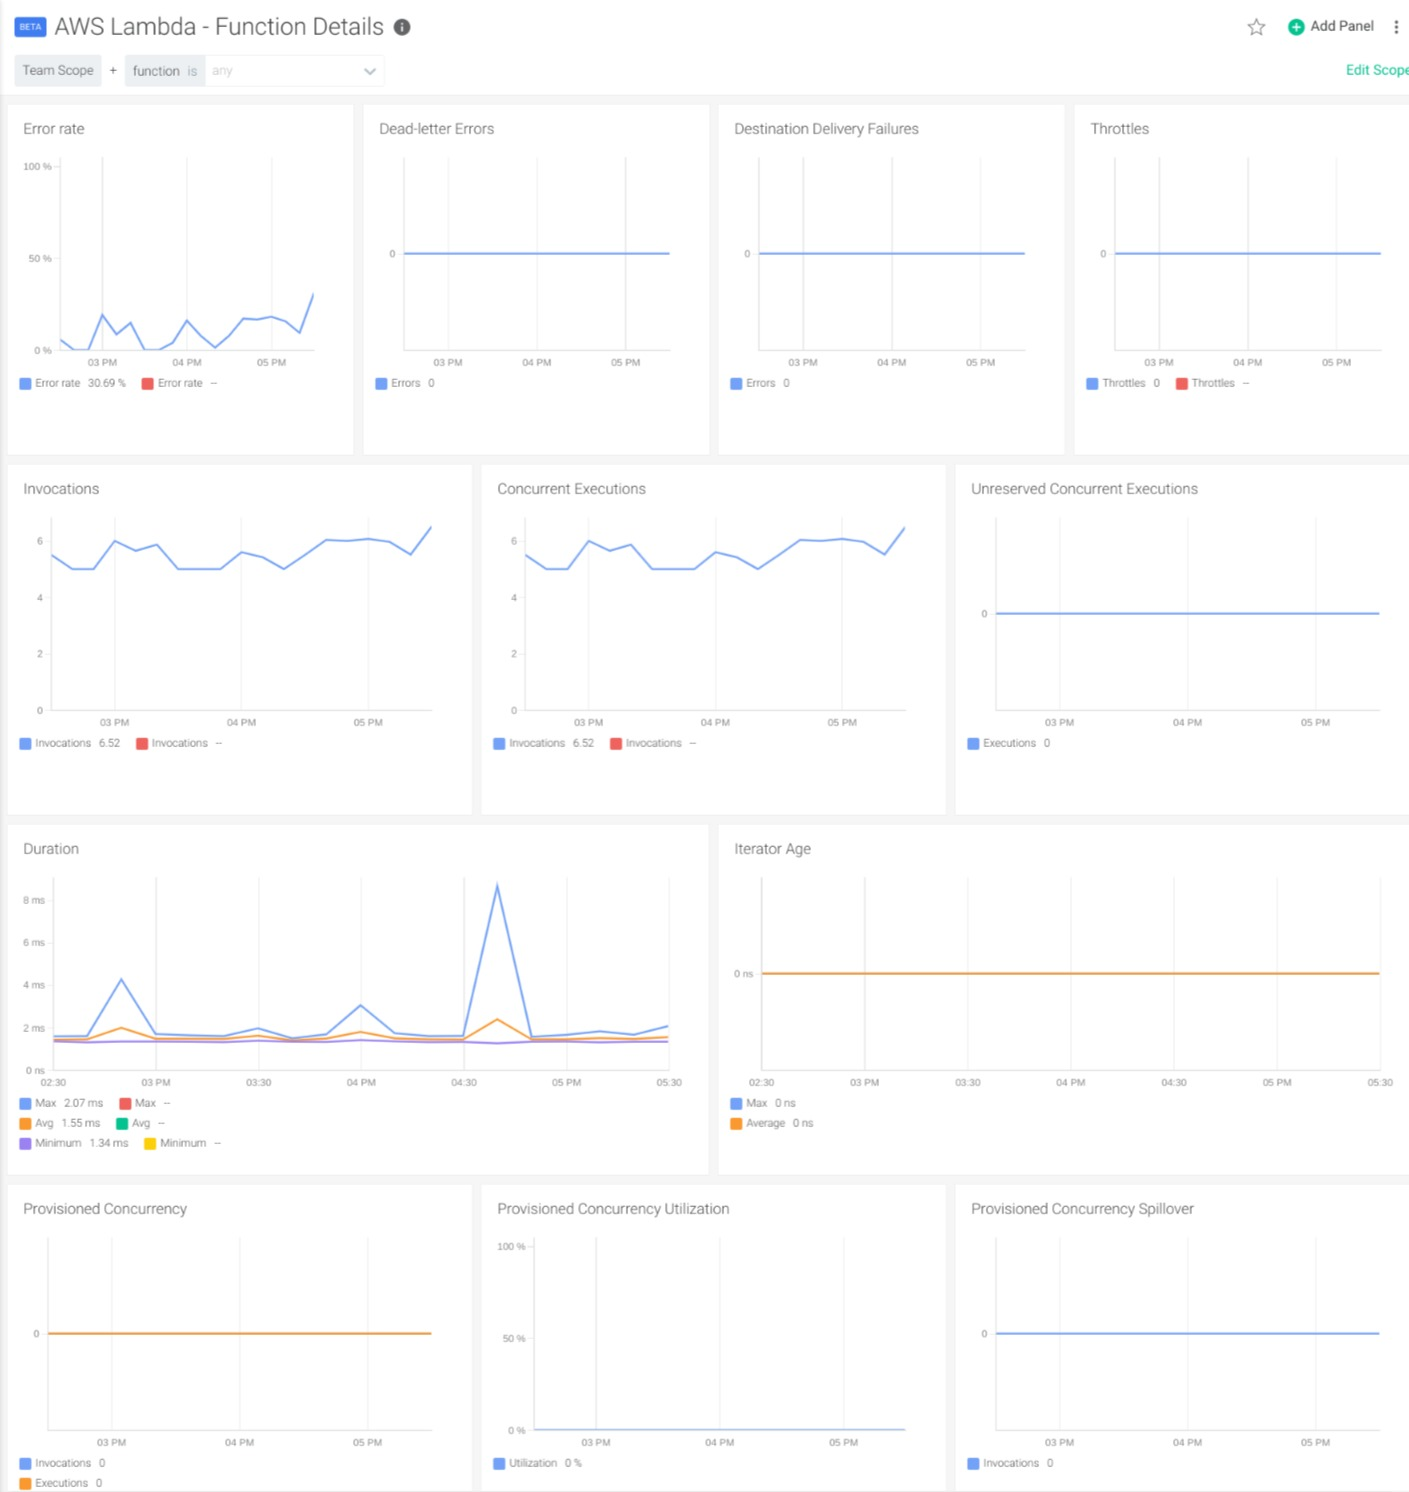 """Dashboard to monitor AWS lambda function details, containing panels like """"Error rate"""", """"Throttles"""", """"Invocations"""" or """"Duration"""""""